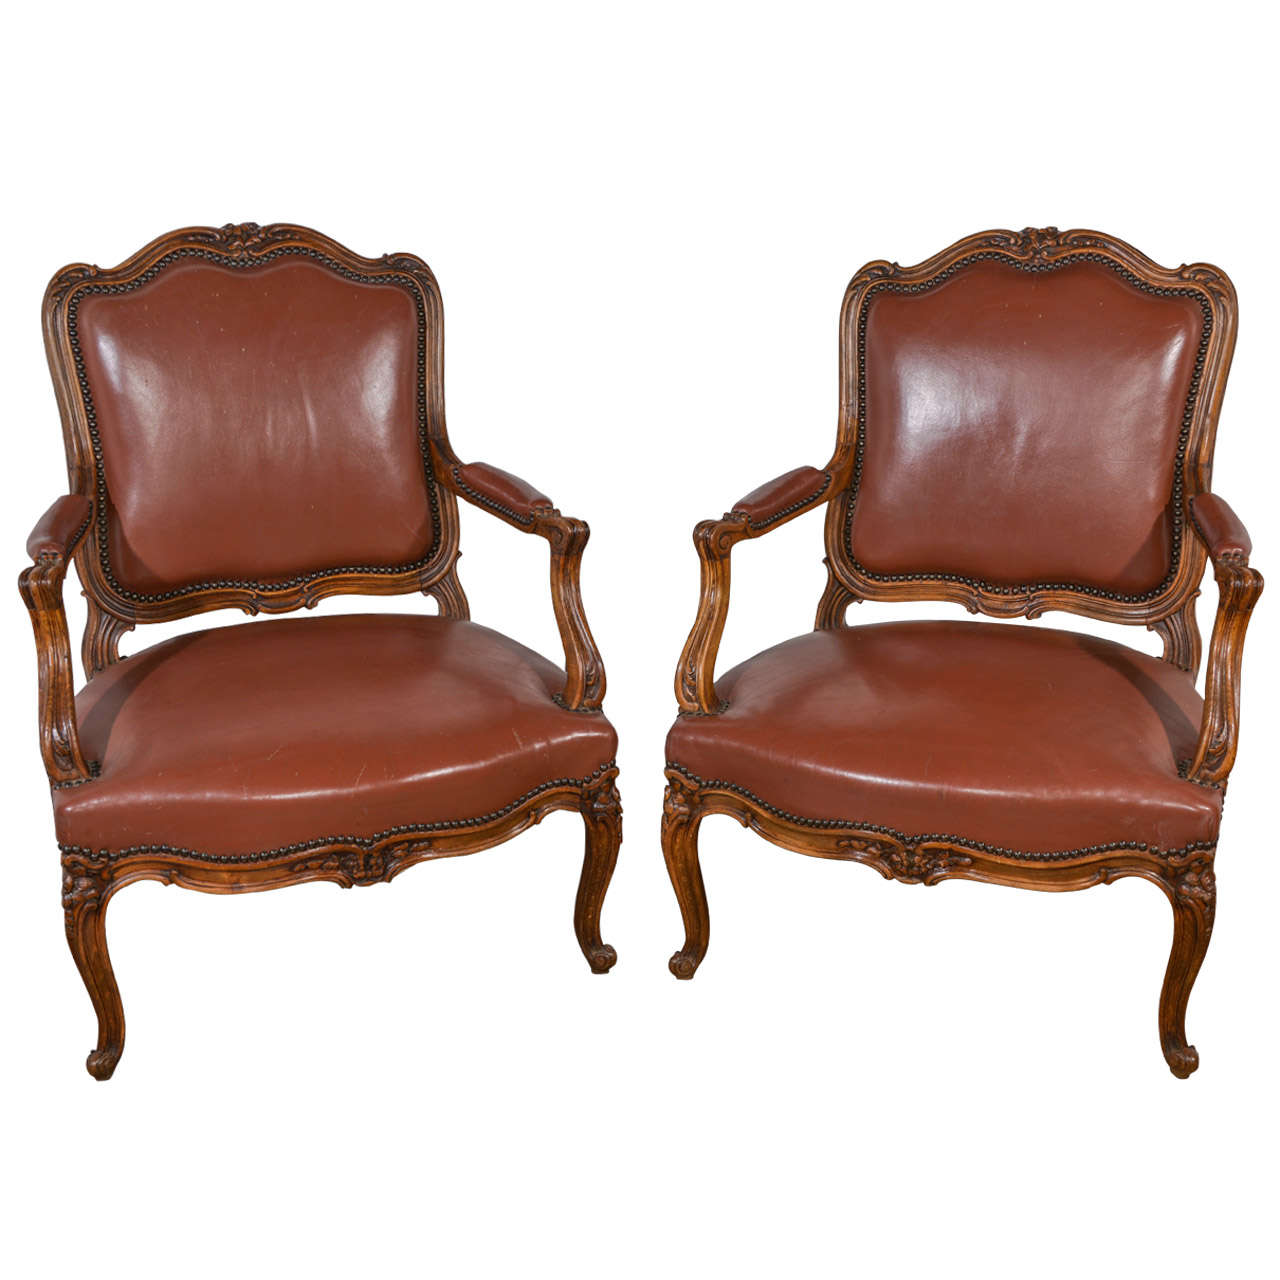 Pair of French Carved Chairs